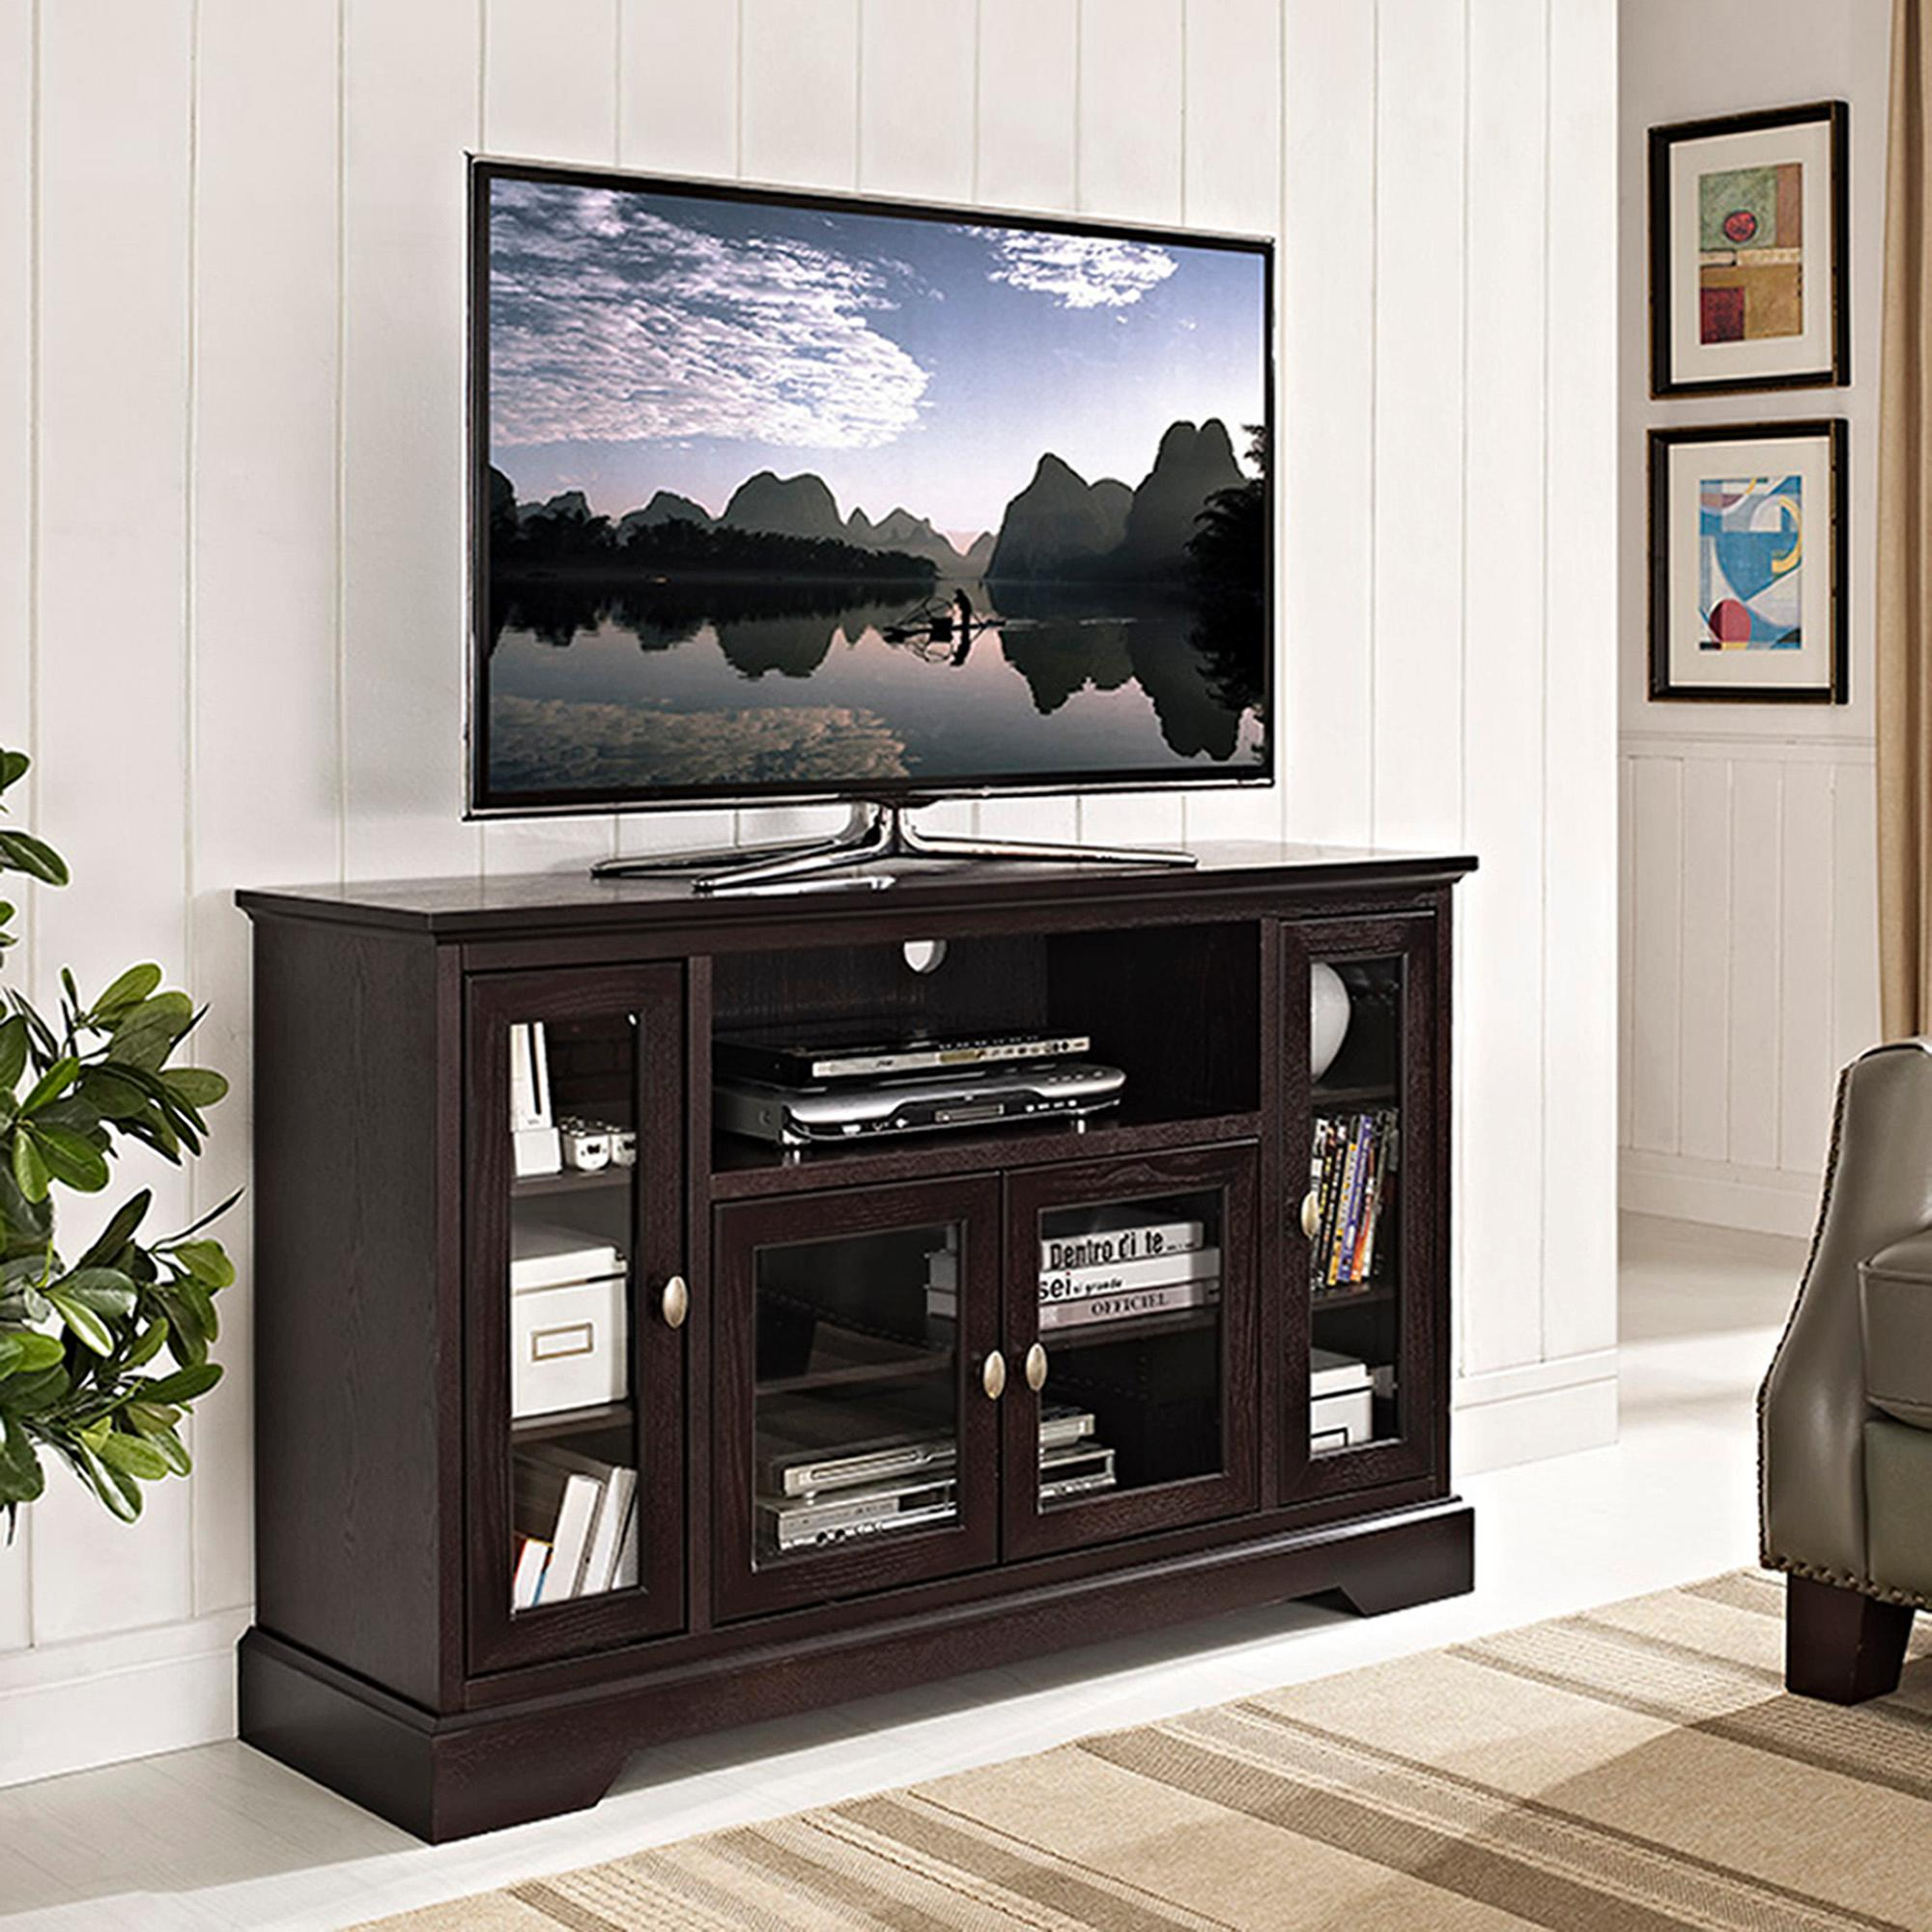 Walker Edison Furniture 52-Inch Highboy Style Wood TV Stand, Black ...